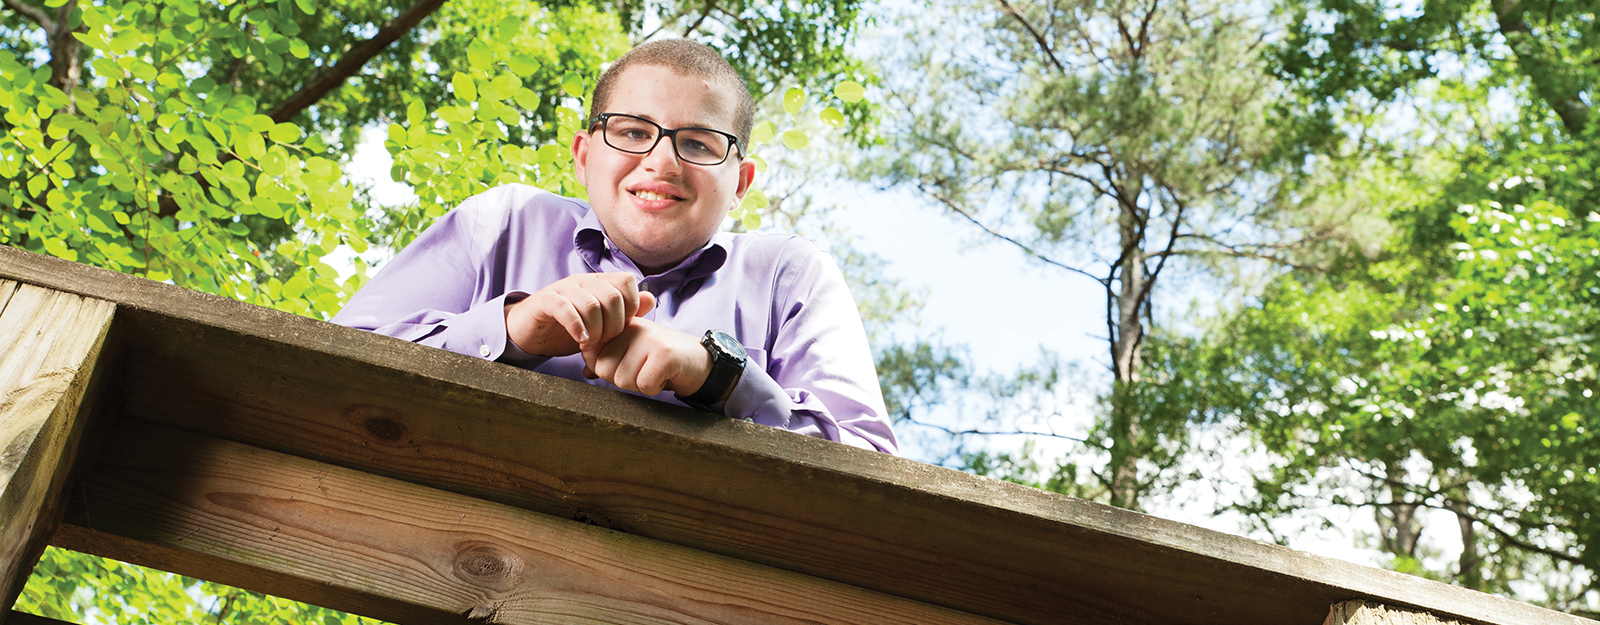 Connor at Marcus Autism Center